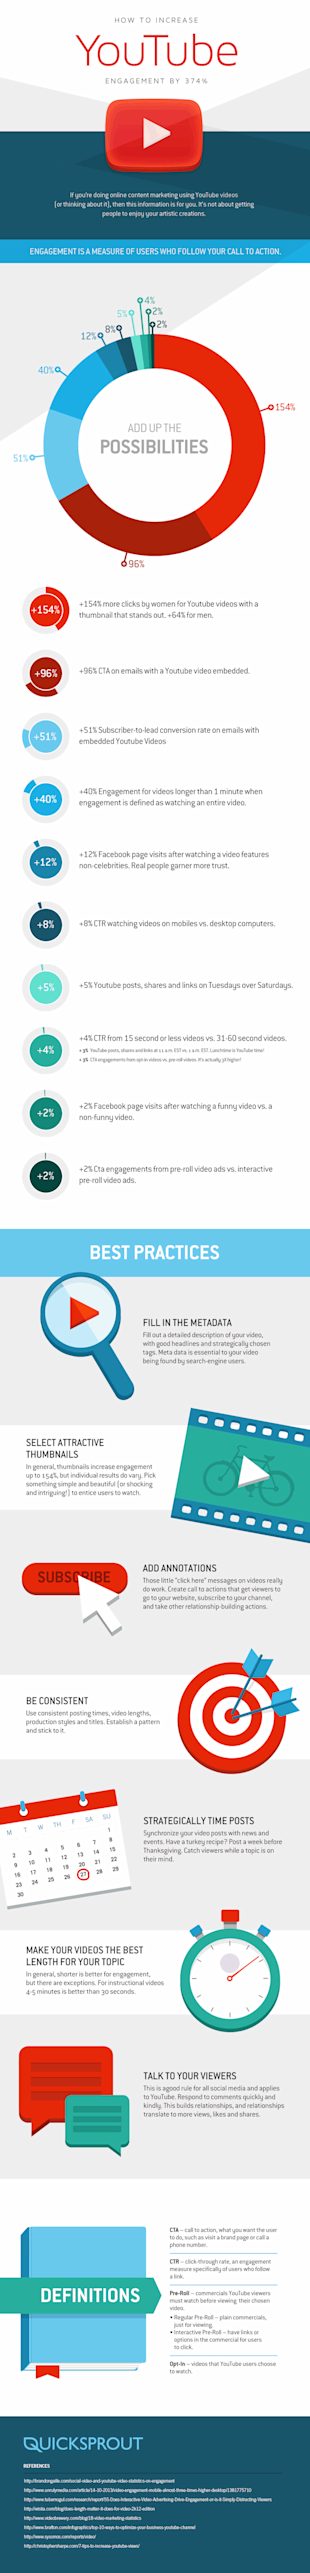 How To Increase YouTube Engagement (Infographic) image how to increase youtube engagement